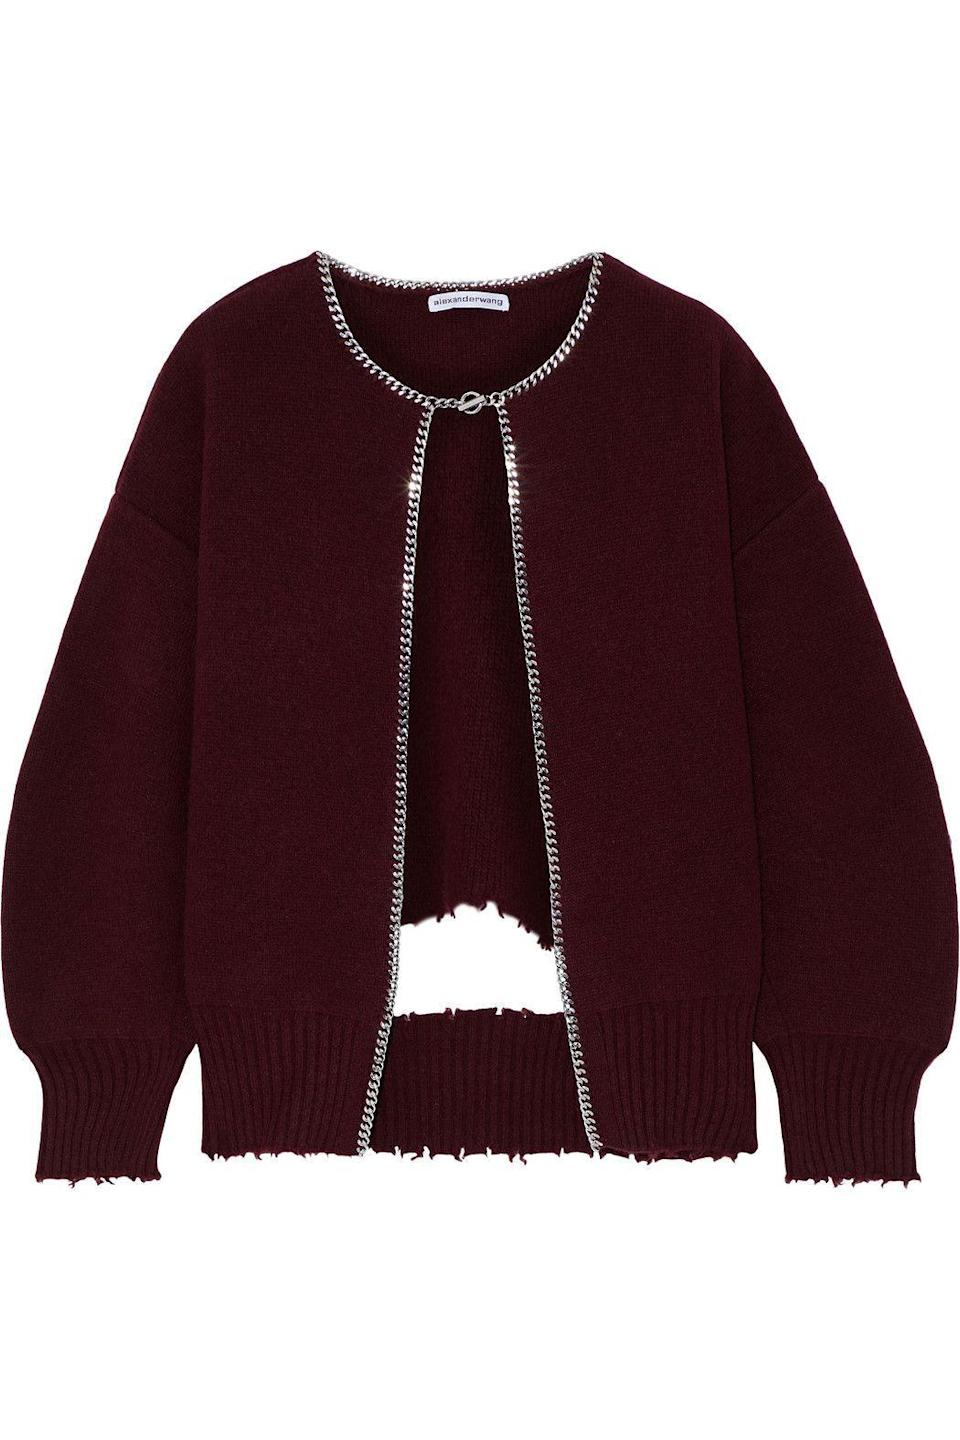 """<p><strong>ALEXANDER WANG</strong></p><p>theoutnet.com</p><p><strong>$299.00</strong></p><p><a href=""""https://go.redirectingat.com?id=74968X1596630&url=https%3A%2F%2Fwww.theoutnet.com%2Fen-us%2Fshop%2Fproduct%2Falexander-wang%2Fjackets%2Fsmart-jackets%2Fdistressed-chain-trimmed-wool-blend-cardigan%2F2204324140848602&sref=https%3A%2F%2Fwww.harpersbazaar.com%2Ffashion%2Ftrends%2Fg34788766%2Fthe-outnets-black-friday-sale-2020%2F"""" rel=""""nofollow noopener"""" target=""""_blank"""" data-ylk=""""slk:Shop Now"""" class=""""link rapid-noclick-resp"""">Shop Now</a></p><p>This is not your grandmonther's cardigan. </p>"""